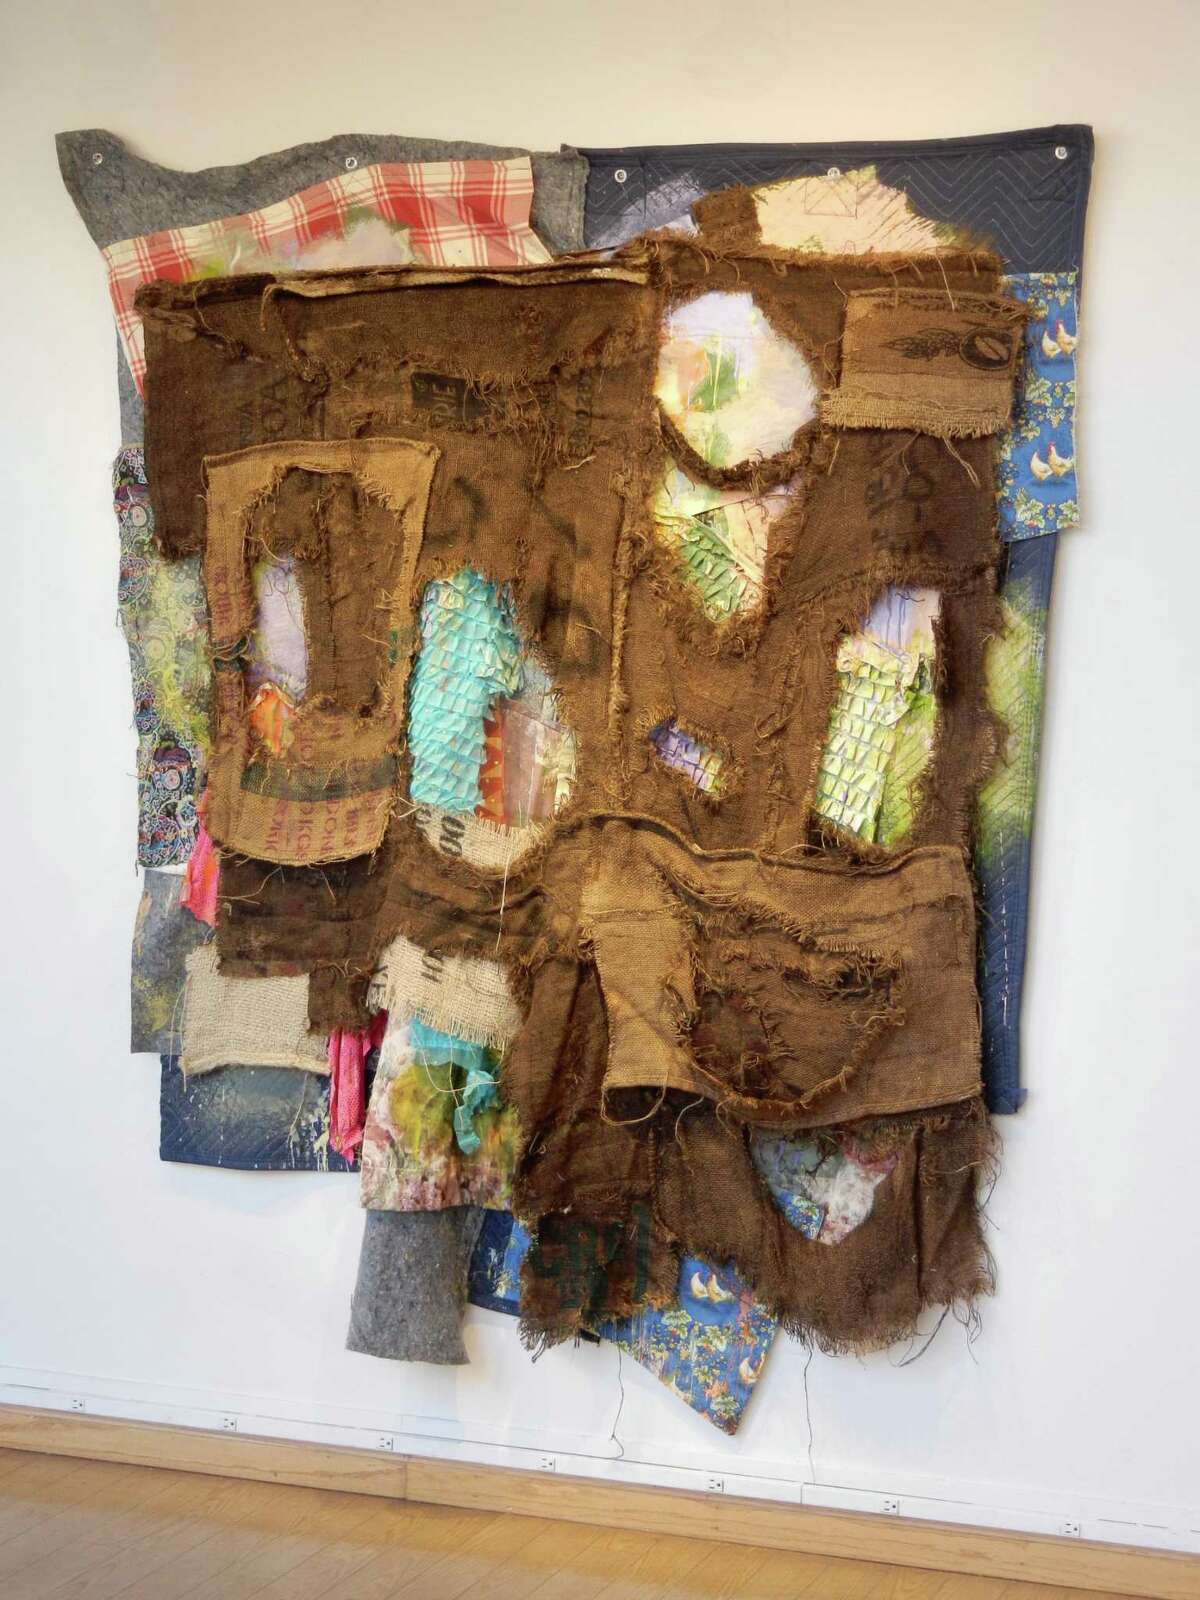 Alan Neider's sewn fabric abstractions follow a progression of creative moves.